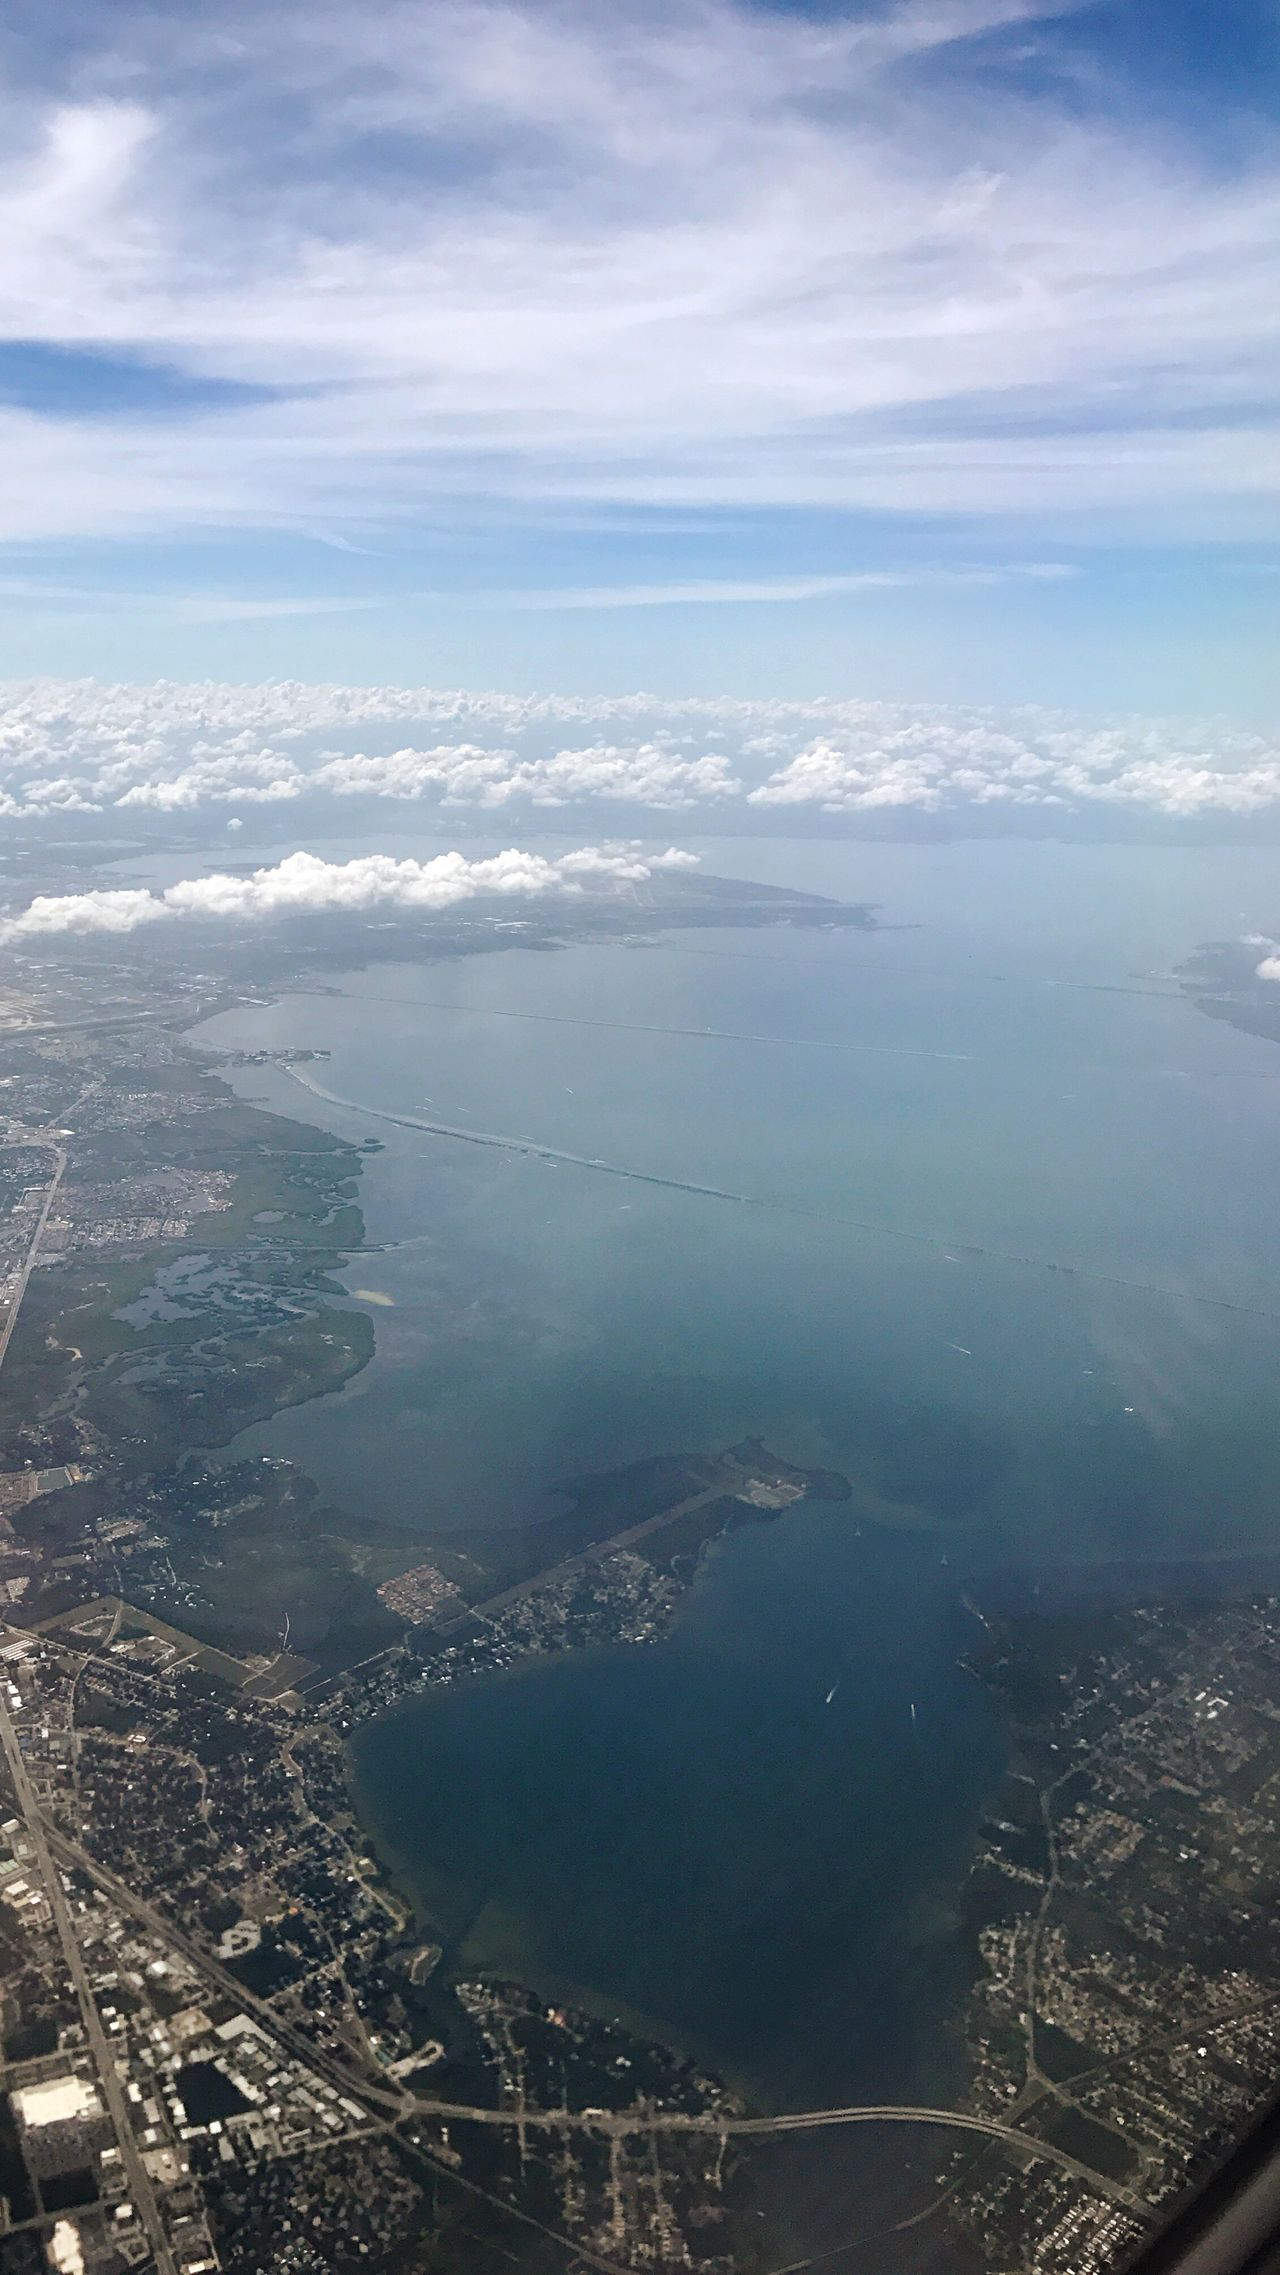 Milehigh Aerial View Sea Water Beauty In Nature Nature Cityscape Scenics Sky Outdoors Day Tranquil Scene Tranquility Landscape City Airplane Horizon Over Water View Into Land Airplane Wing